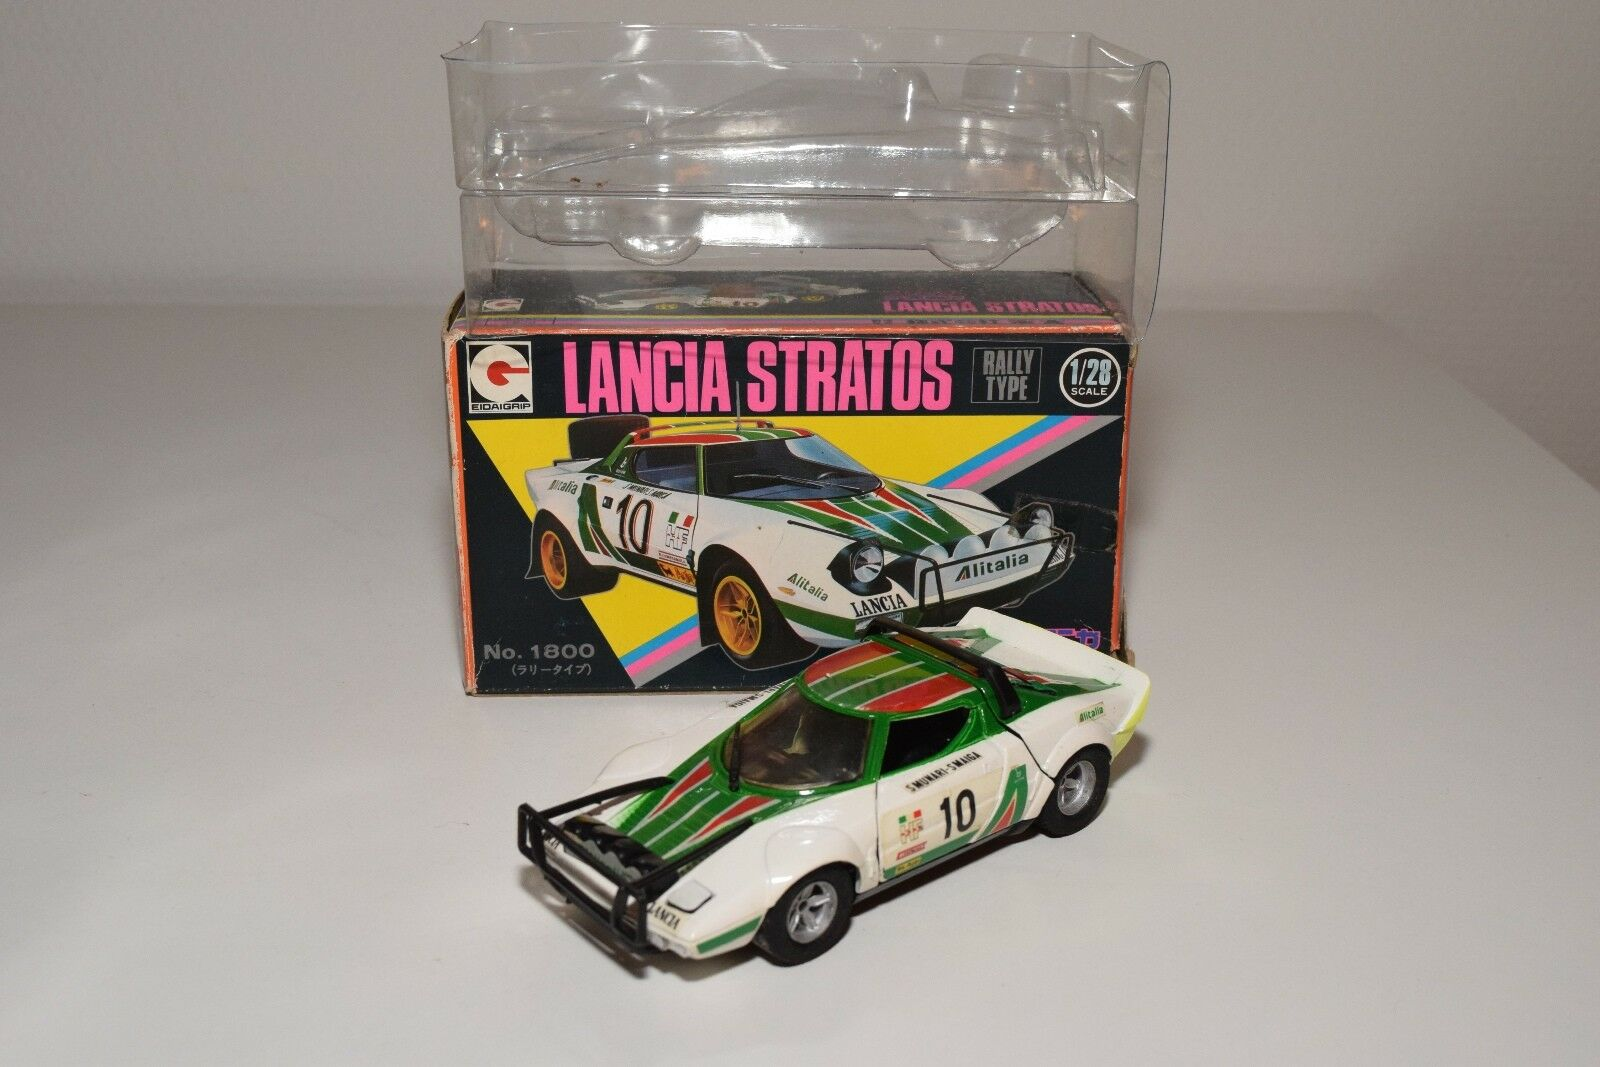 .  EDAI EIDAI GRIP 21 LANCIA STRATOS ALITALIA RALLY WHITE NEAR MINT BOXED RARE